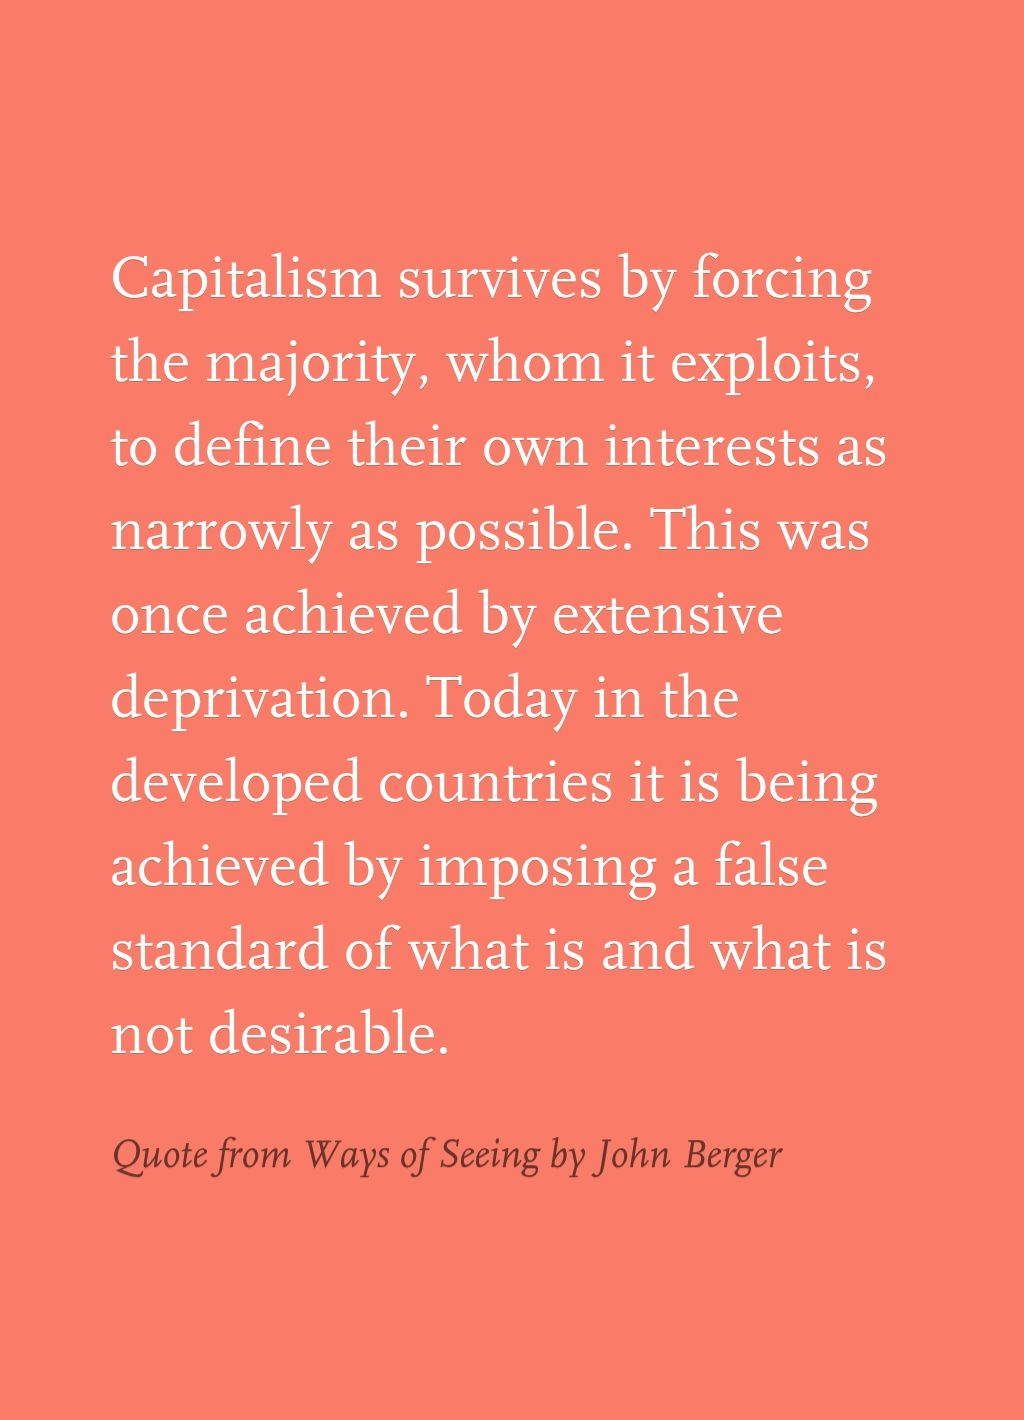 quote from ways of seeing by john berger occupy  john berger ways of seeing essay quote from ways of seeing by john berger